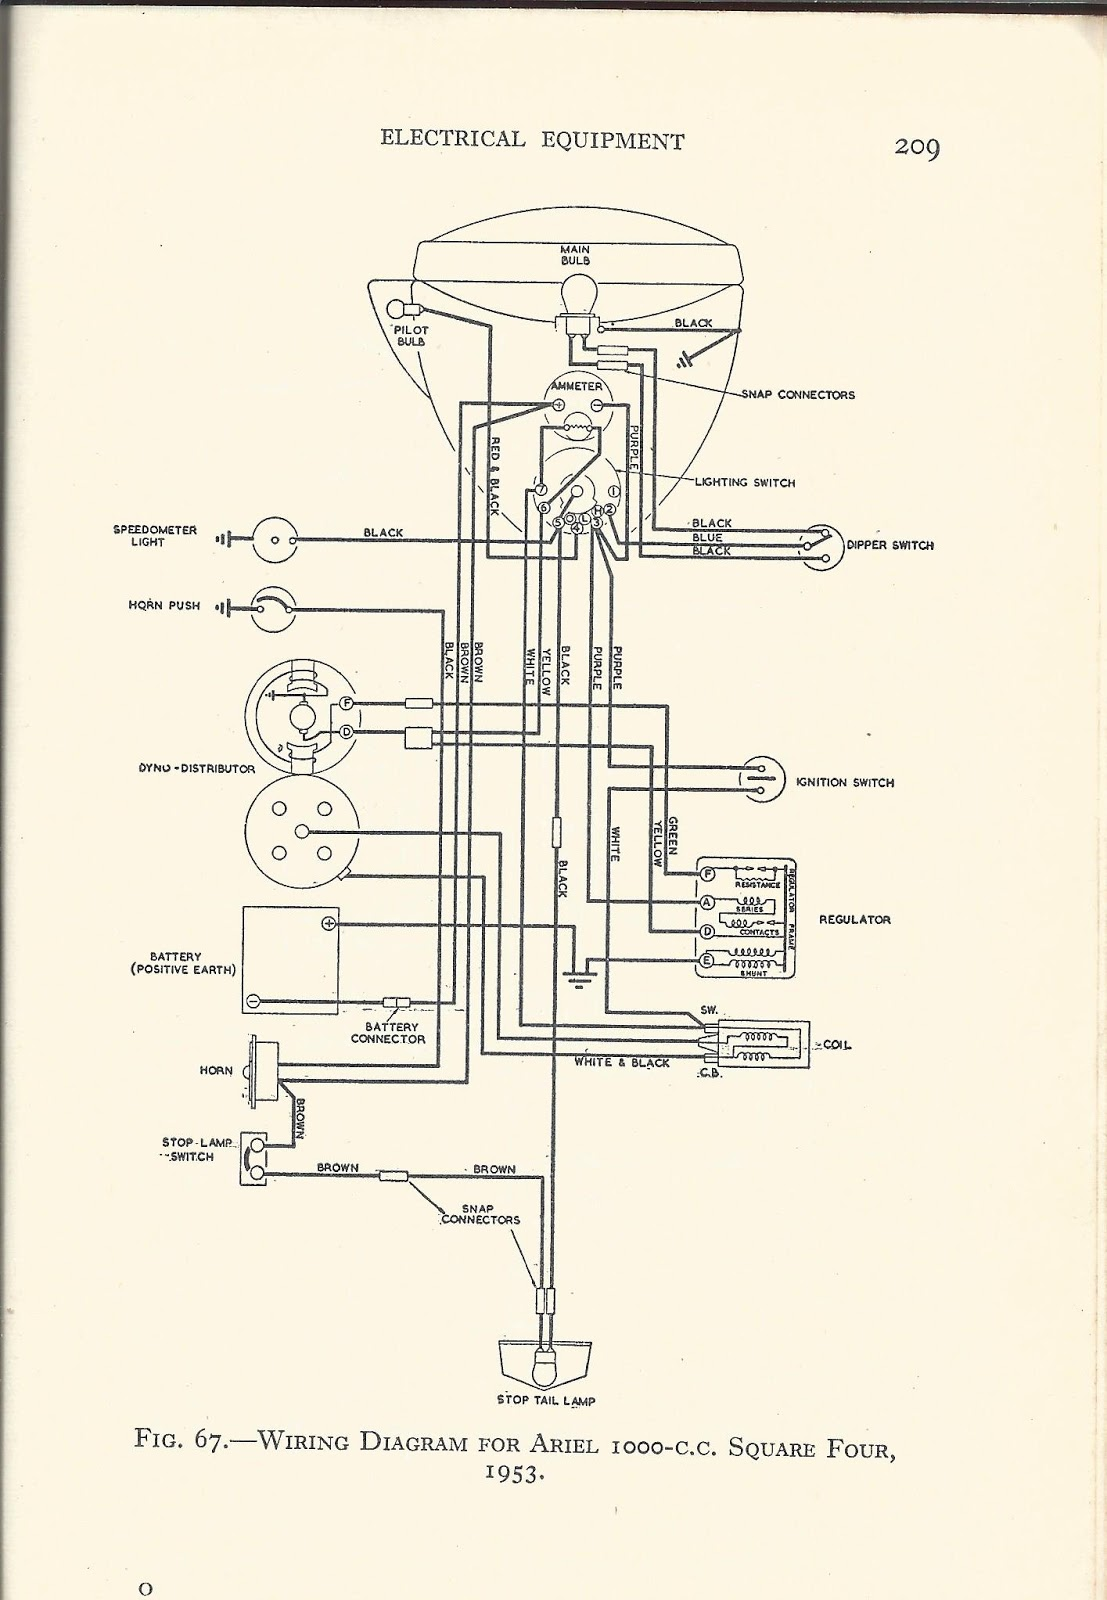 Ariel Wiring Diagram Diagrams Plymouth Colt Amelia Squariel Motorcycle Rh Square Four Blogspot Com